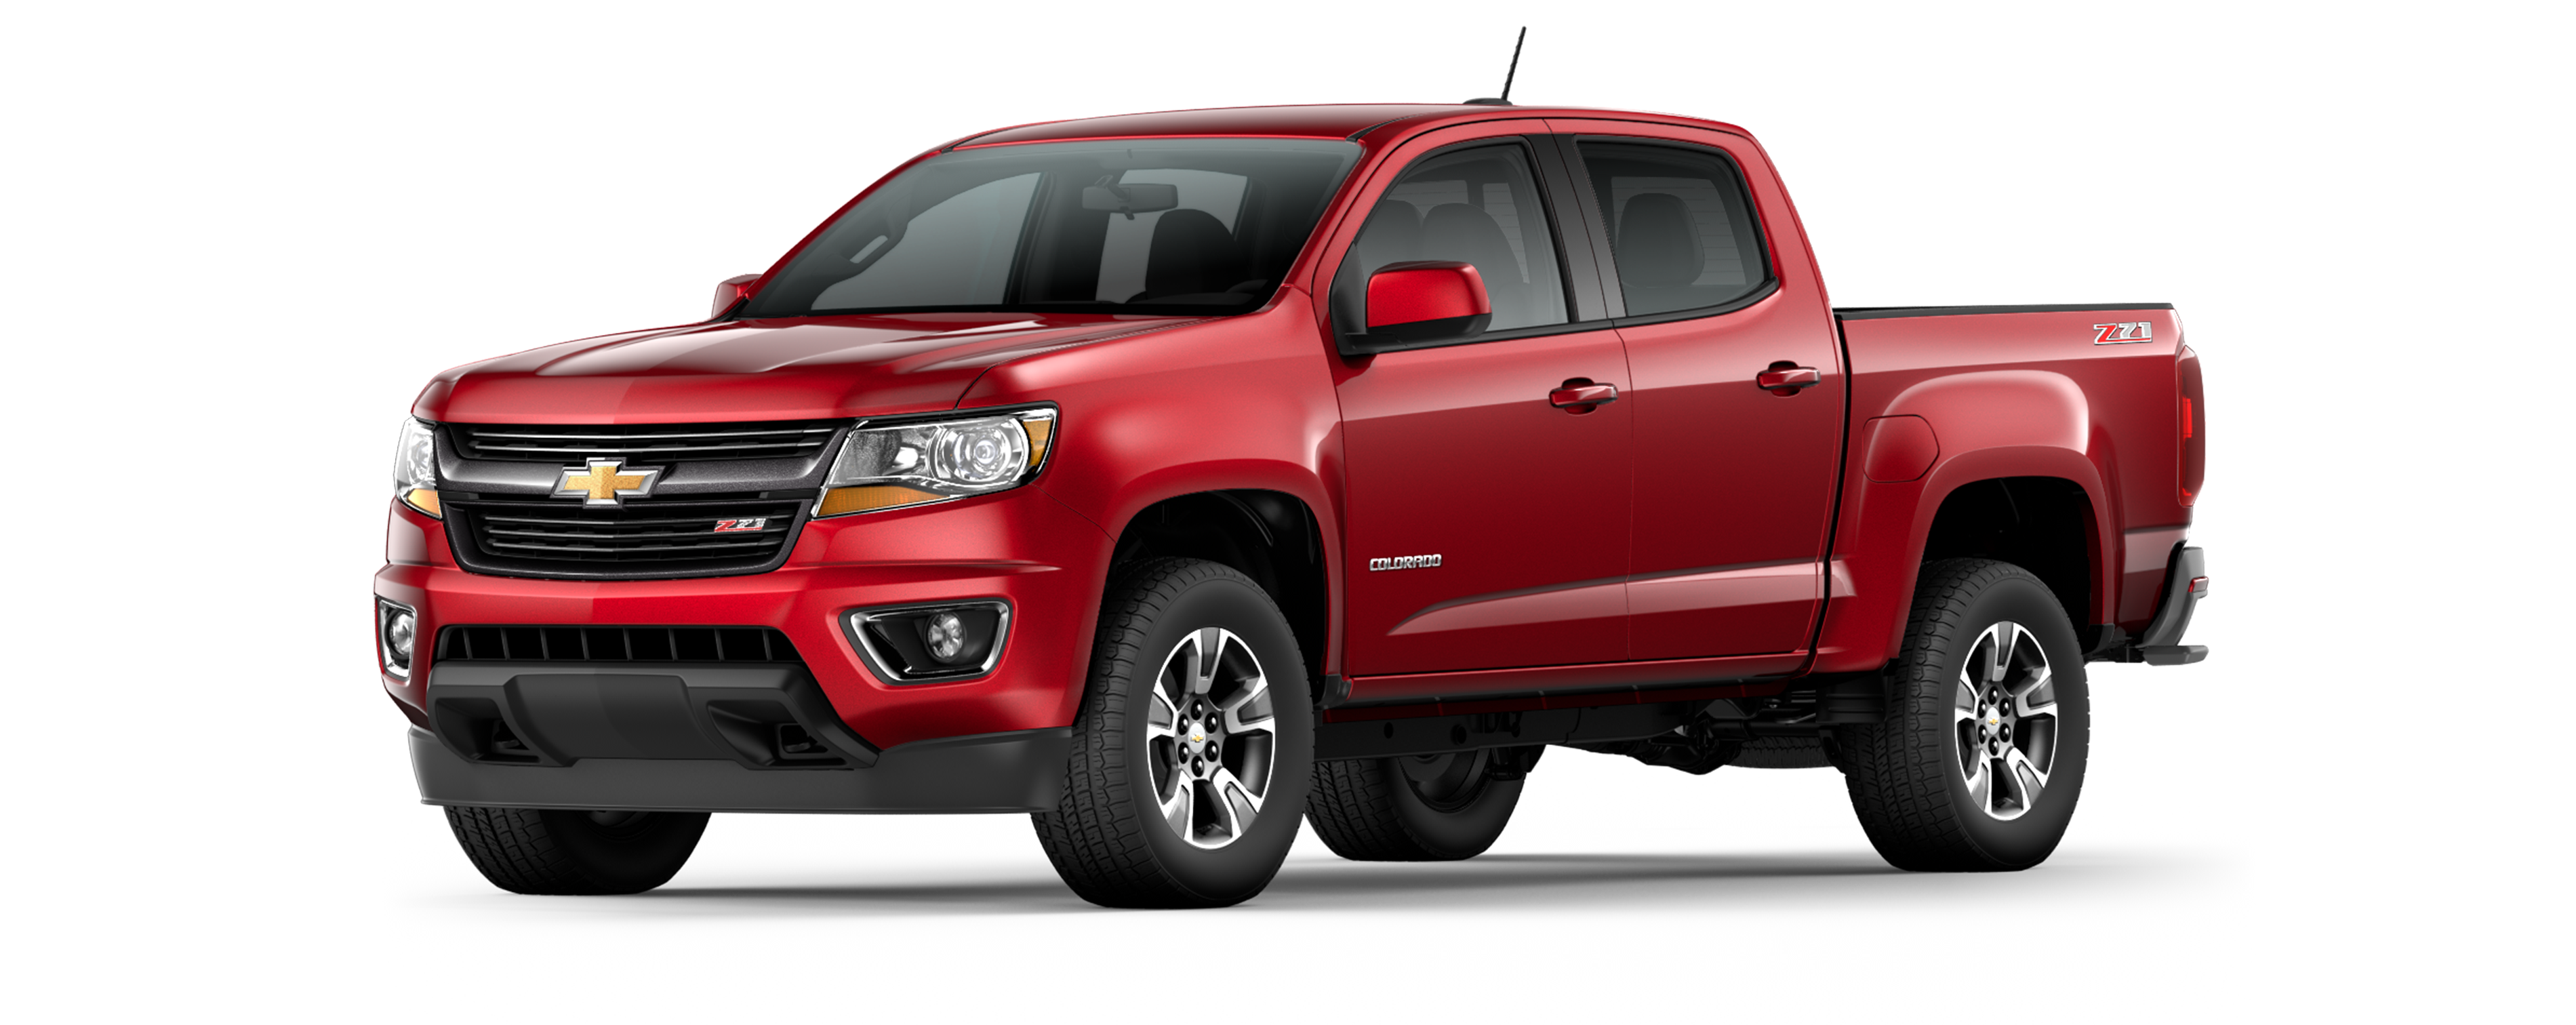 of recall take advantage chevy extended owner warranty tablet gm information chevrolet center recalls your